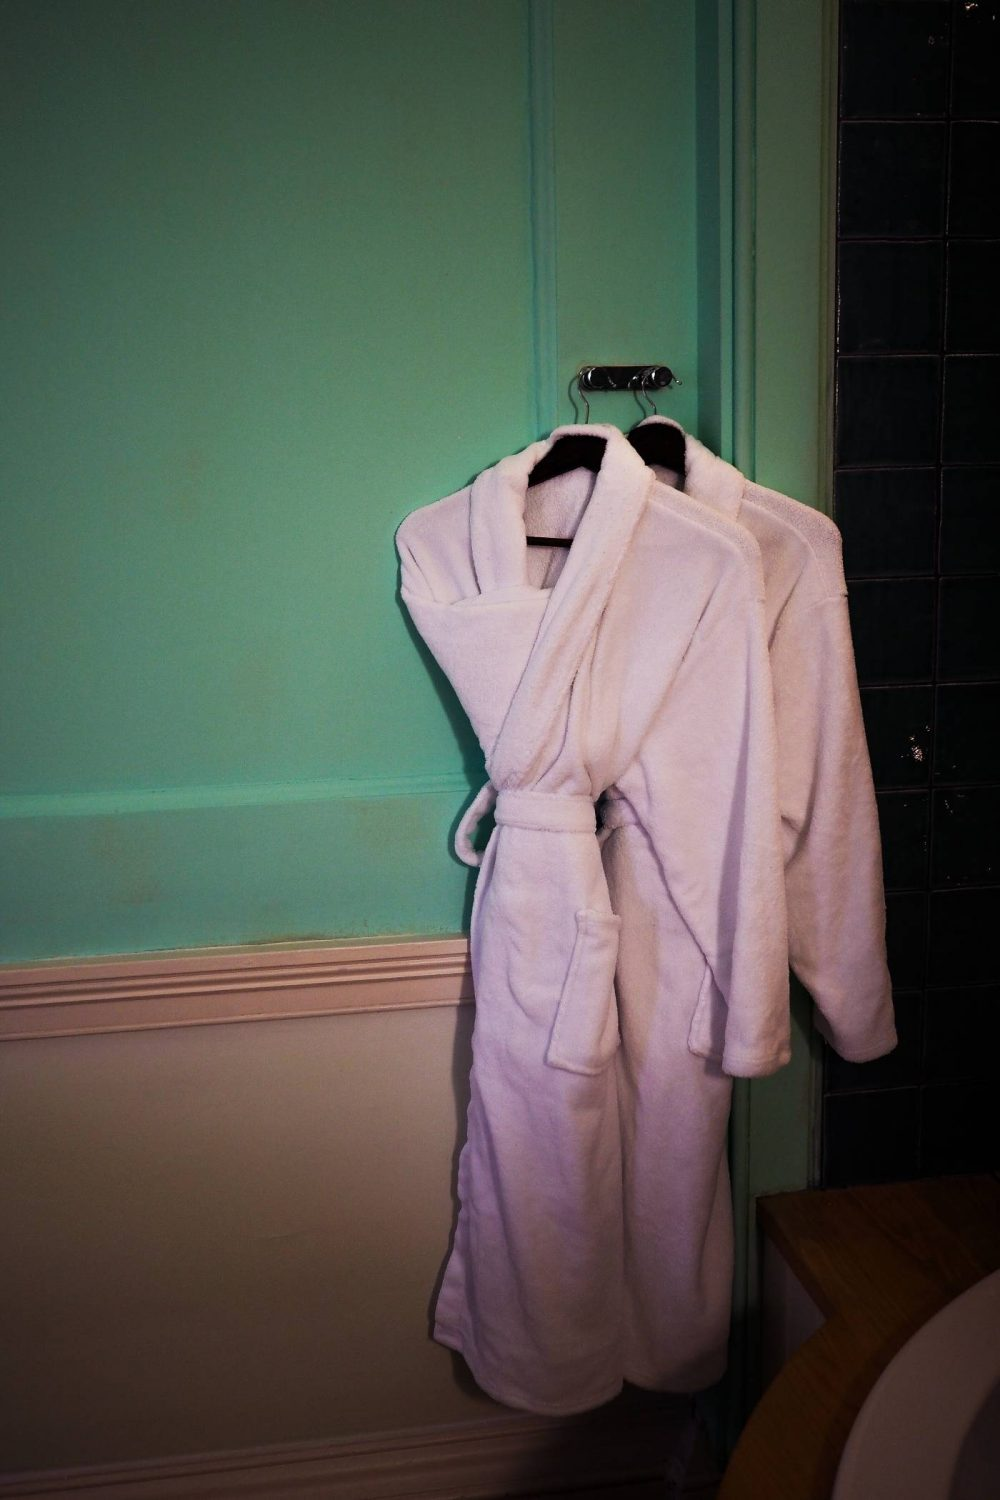 Two dressing gowns hanging on the wall